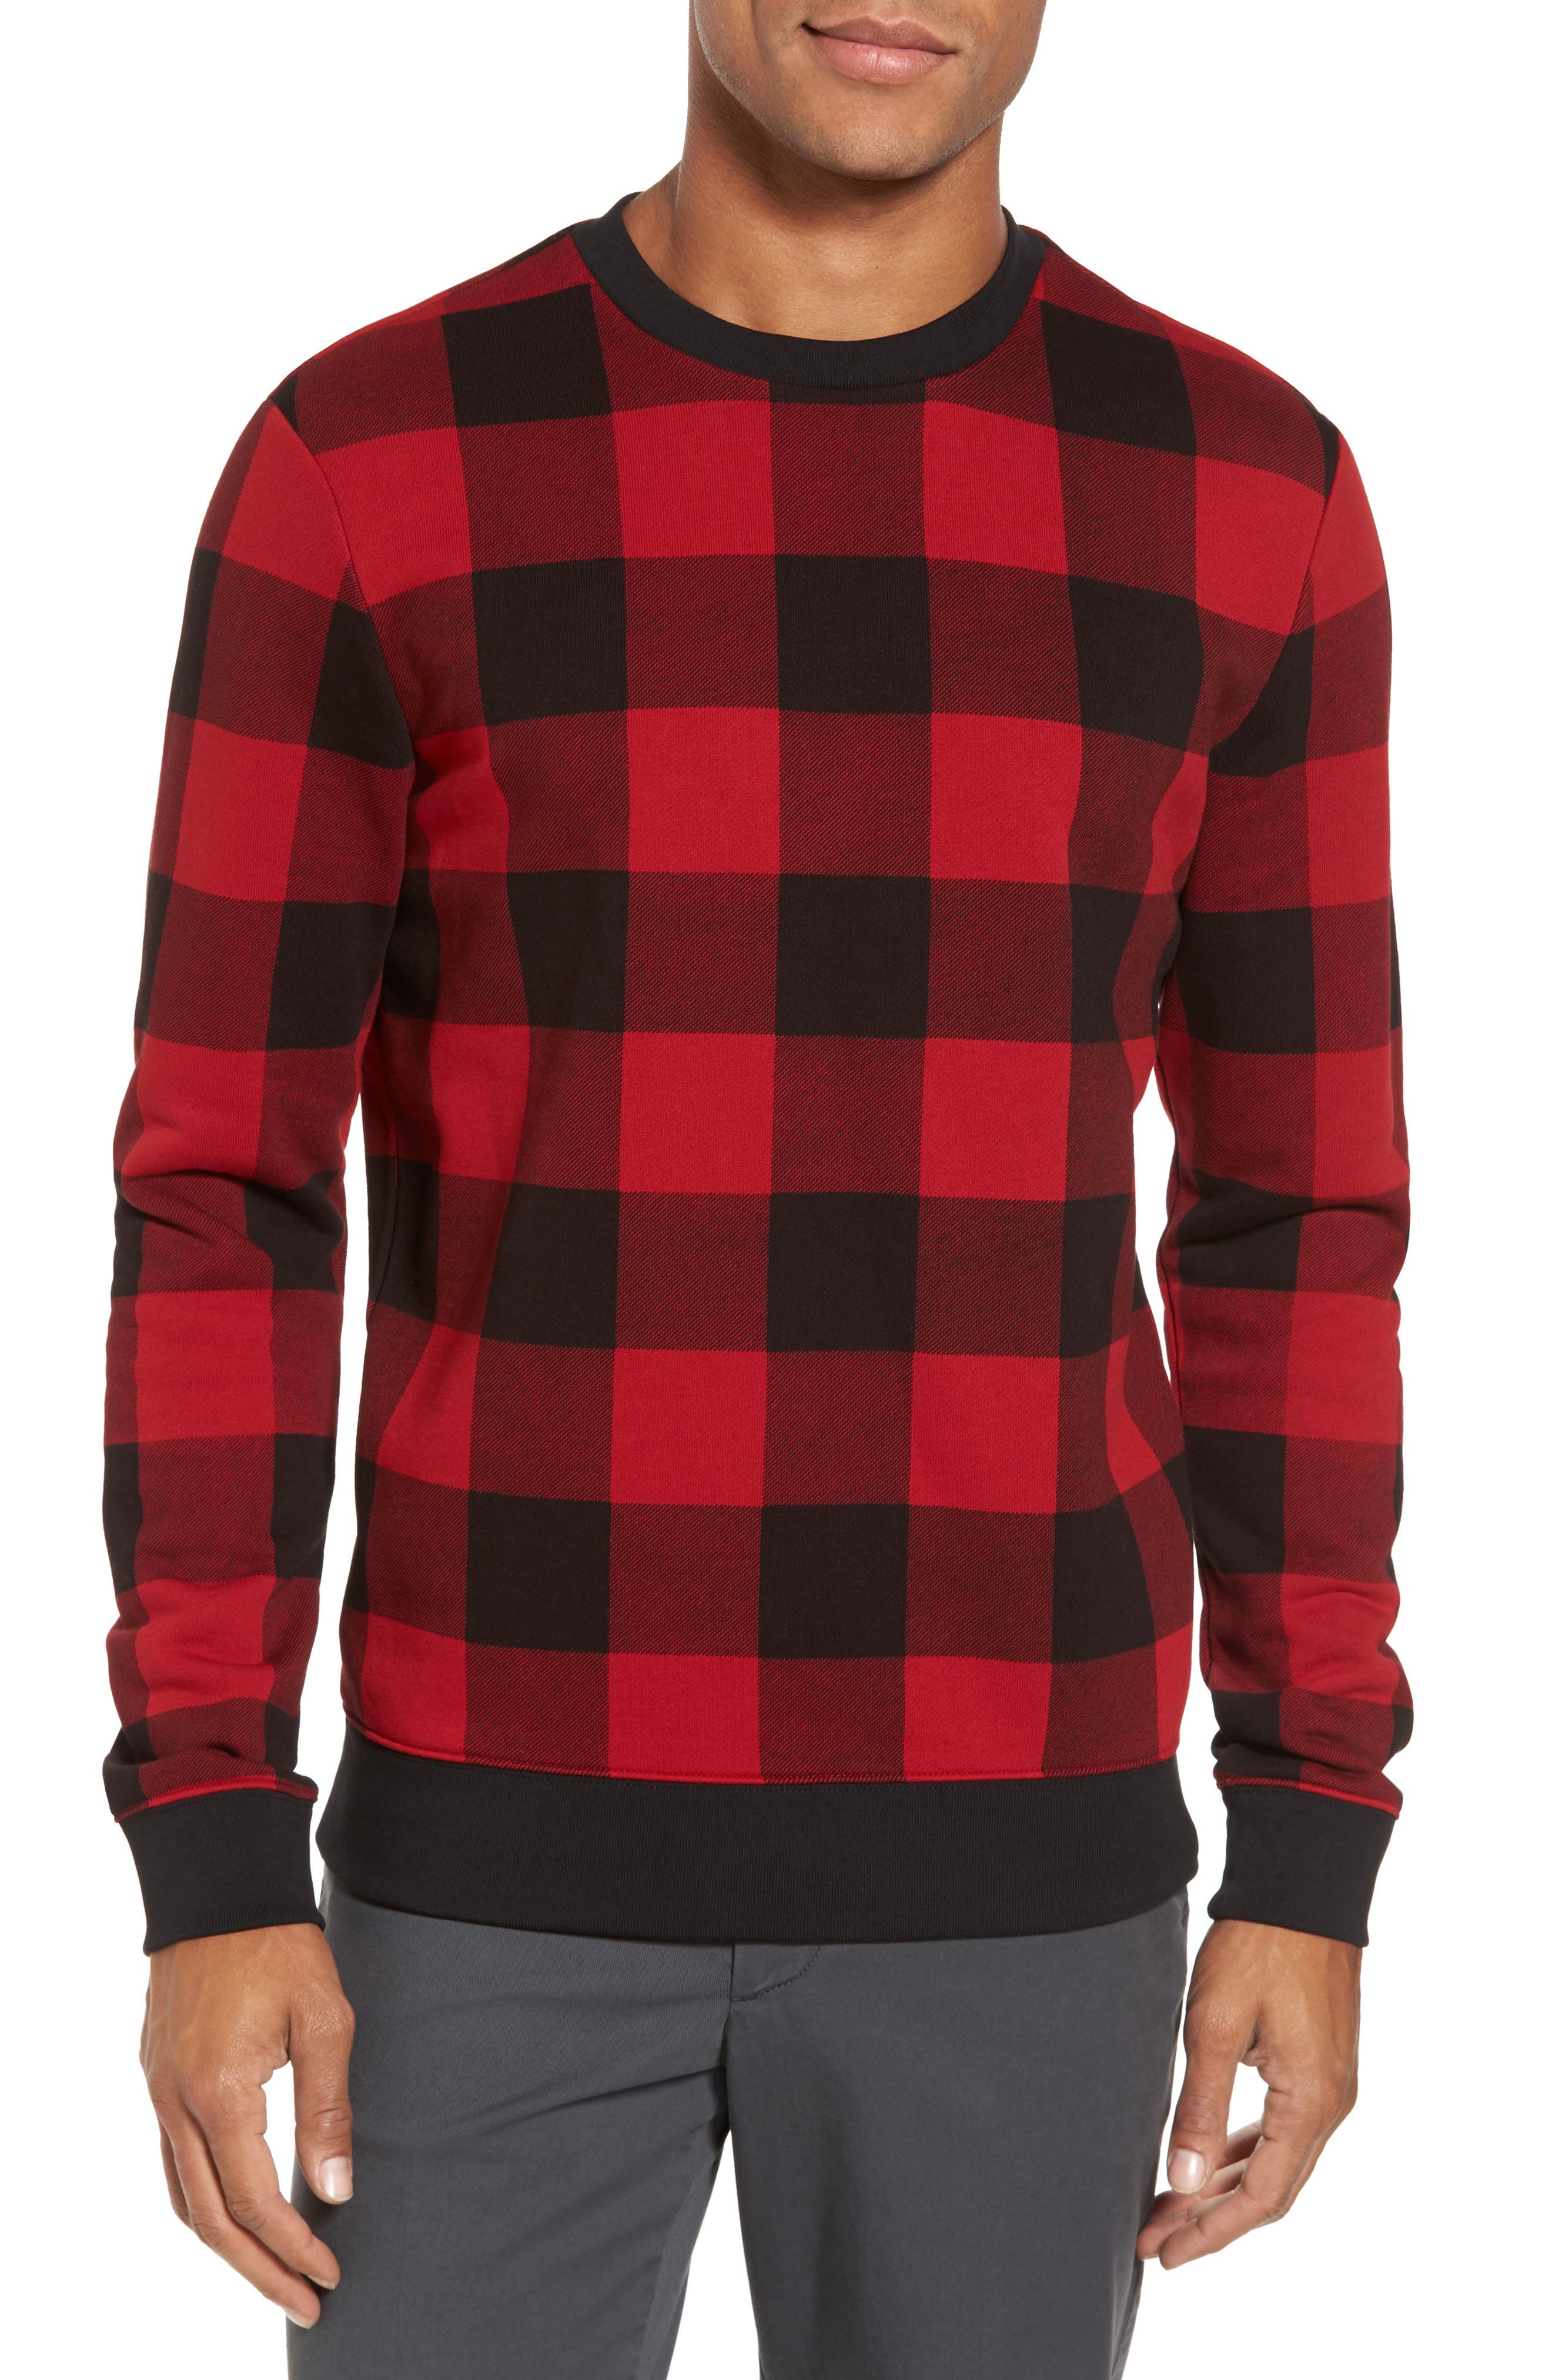 Skubic Check Slim Fit Sweater,                         Main,                         color, 629